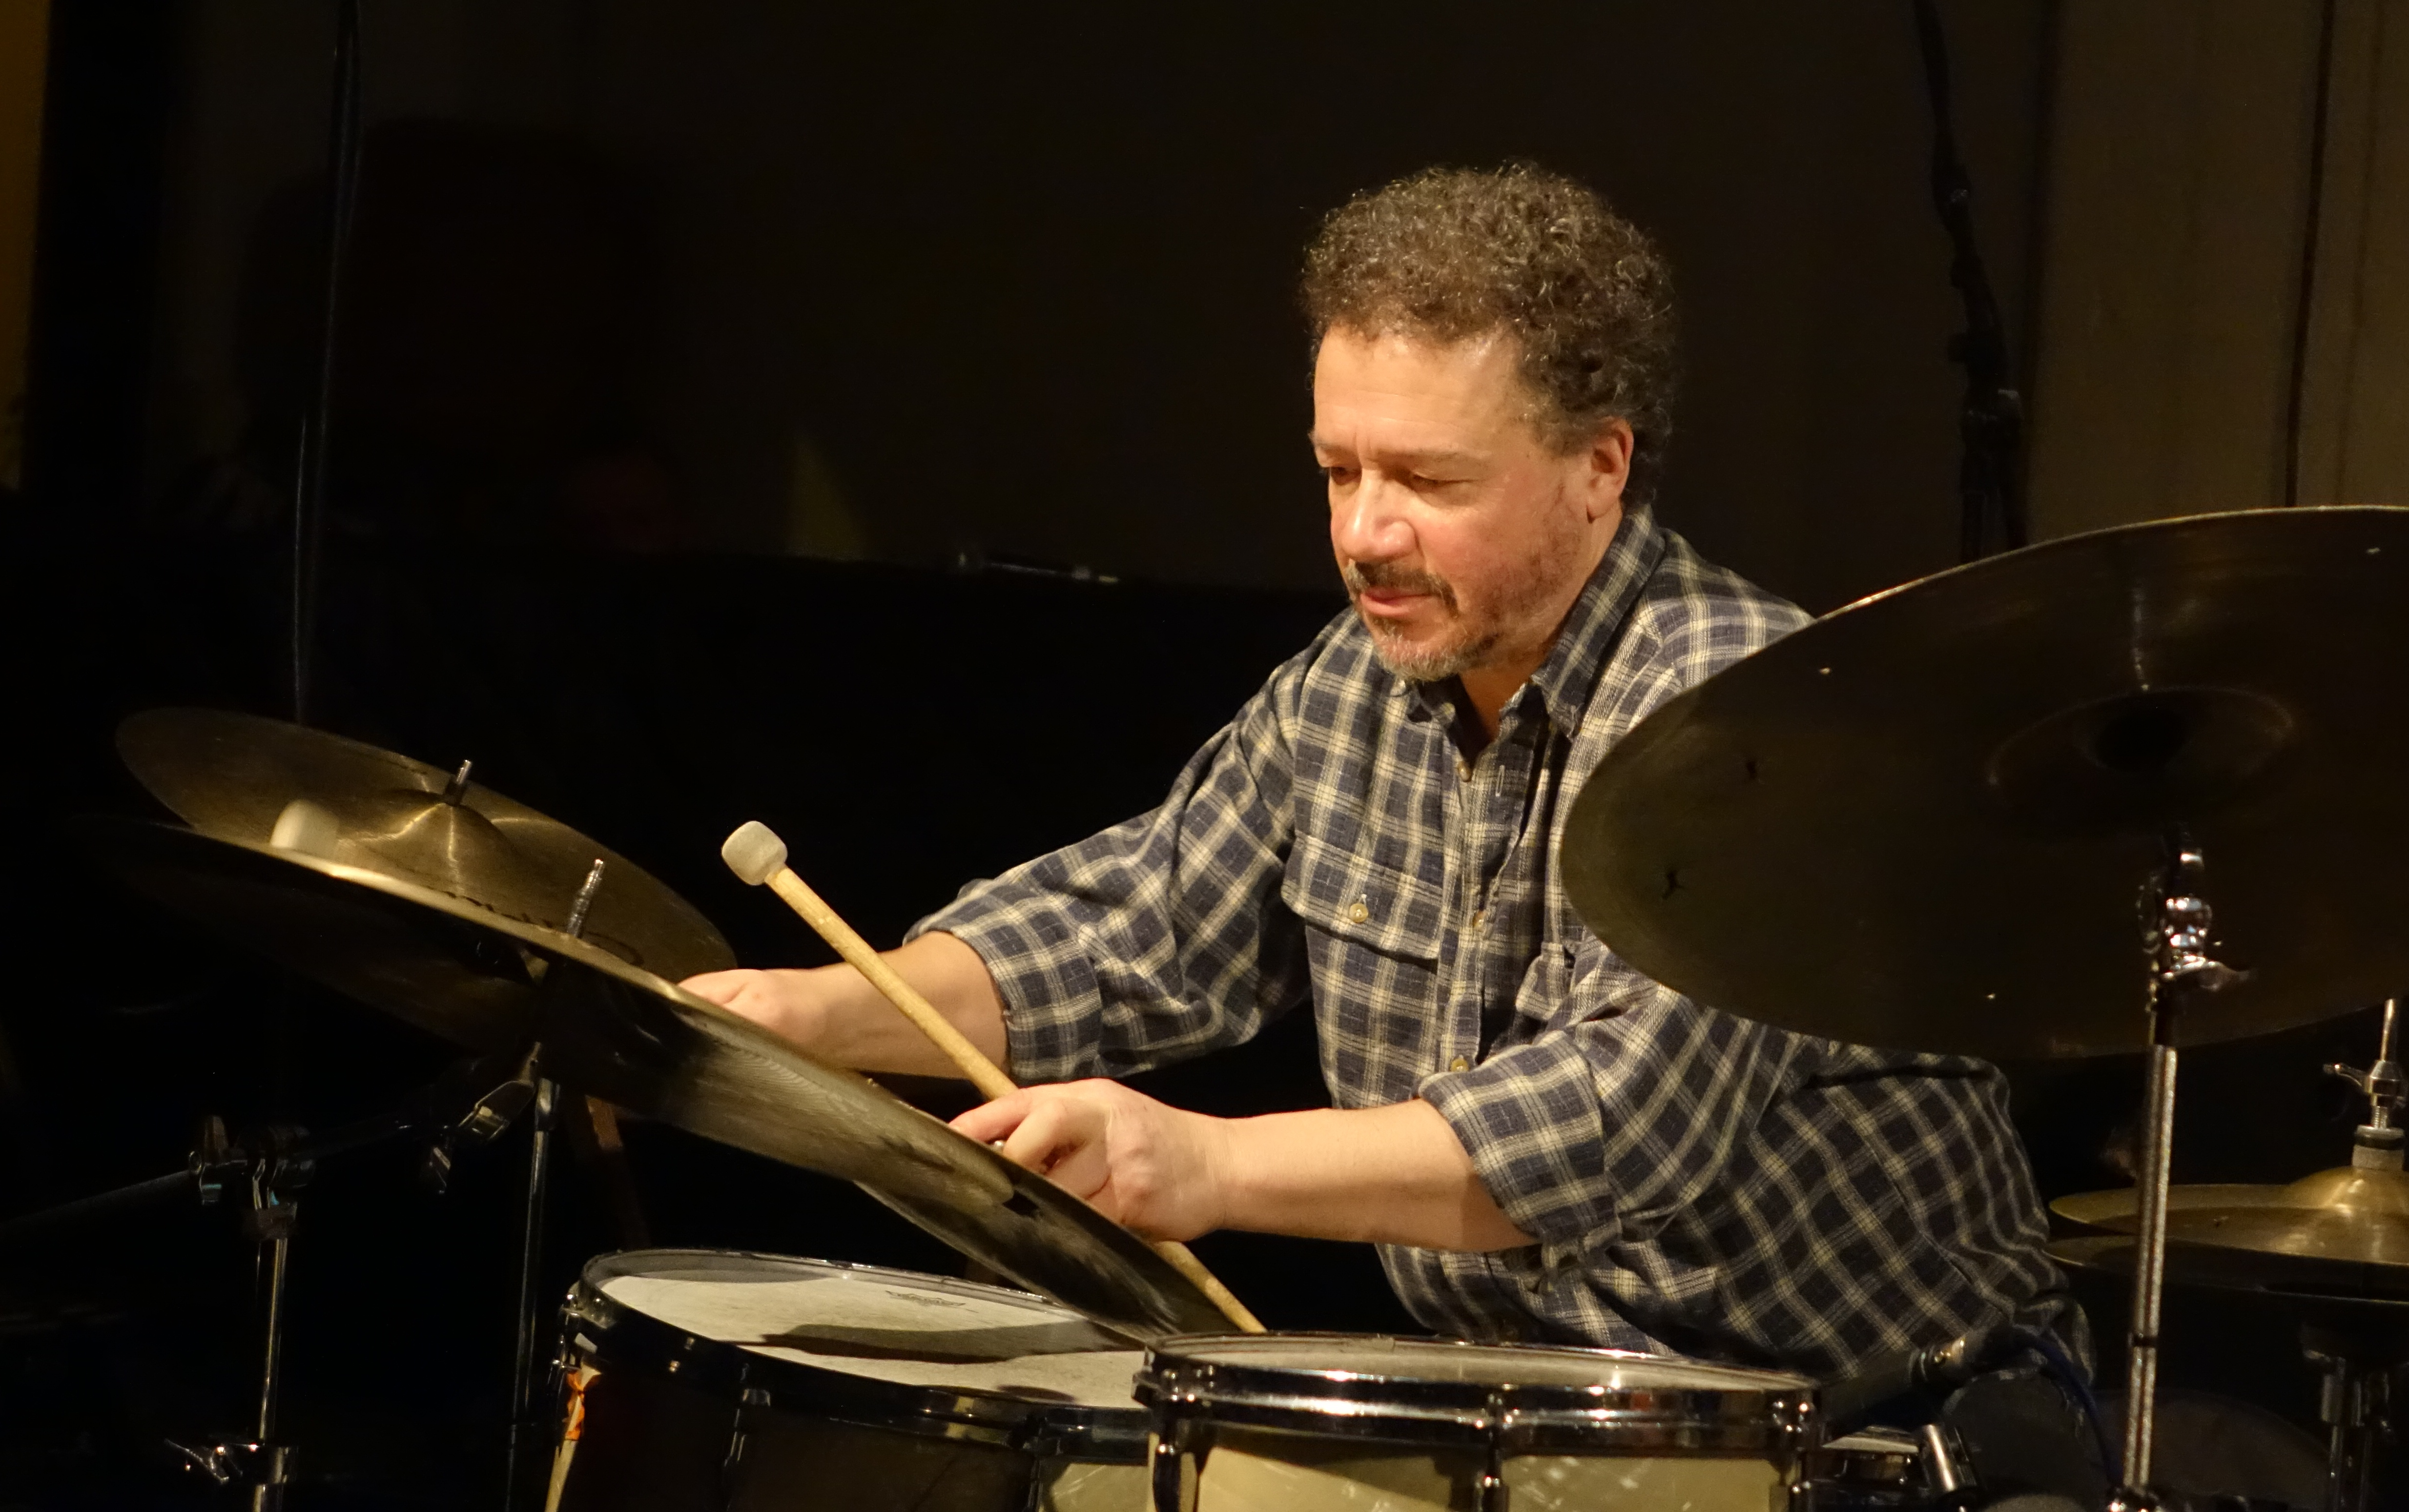 Mark Sanders at Cafe Oto, London in February 2019